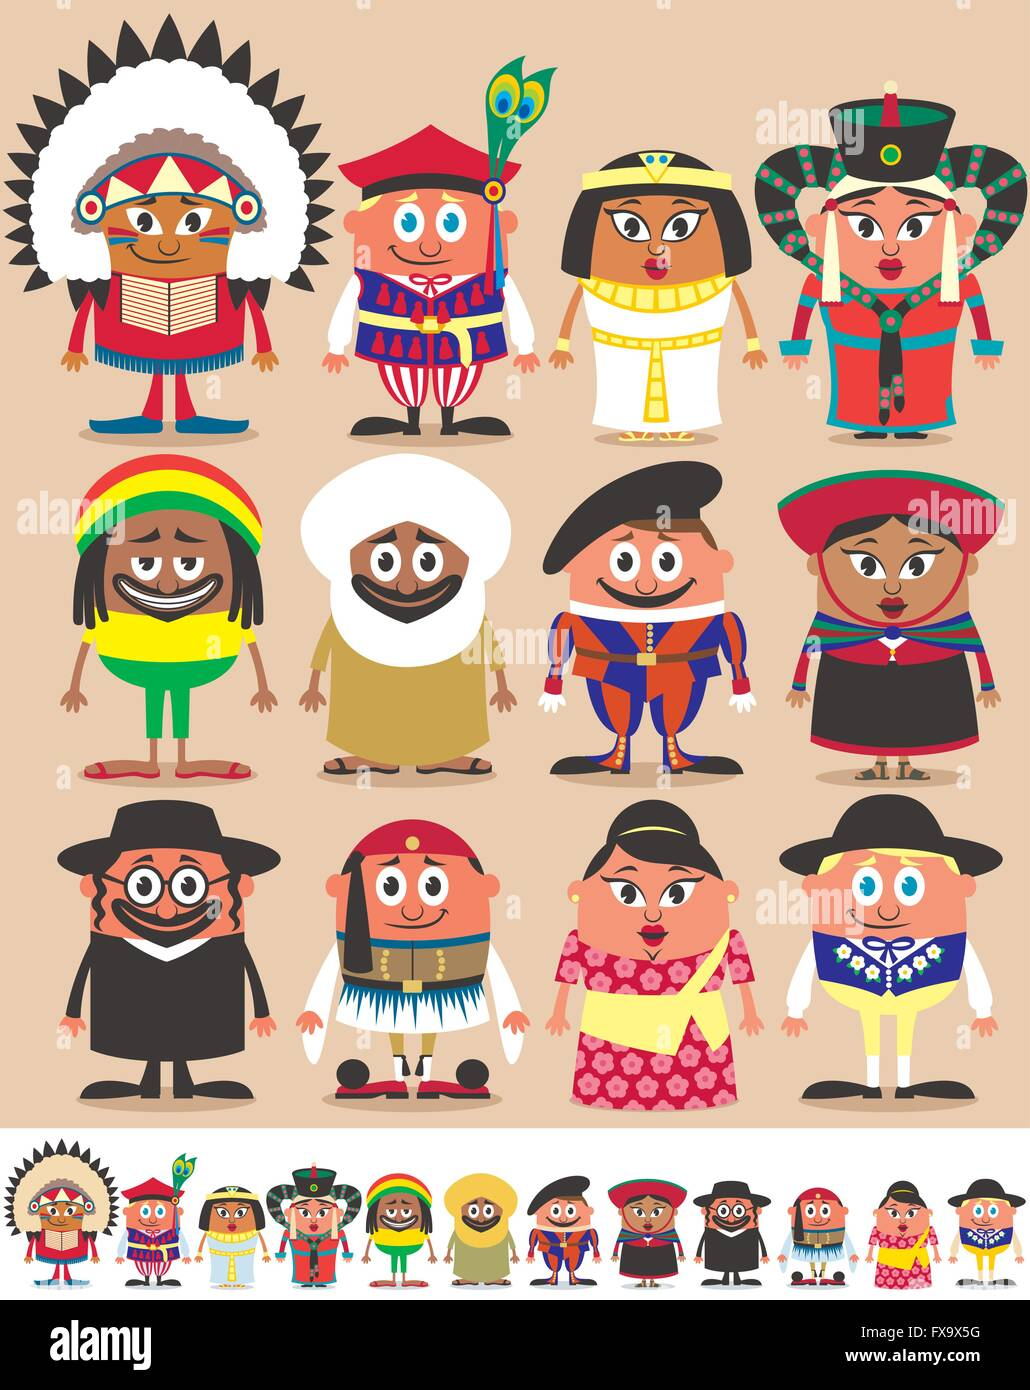 Set of 12 characters dressed in different national costumes. Each character is in 2 color versions depending on - Stock Vector